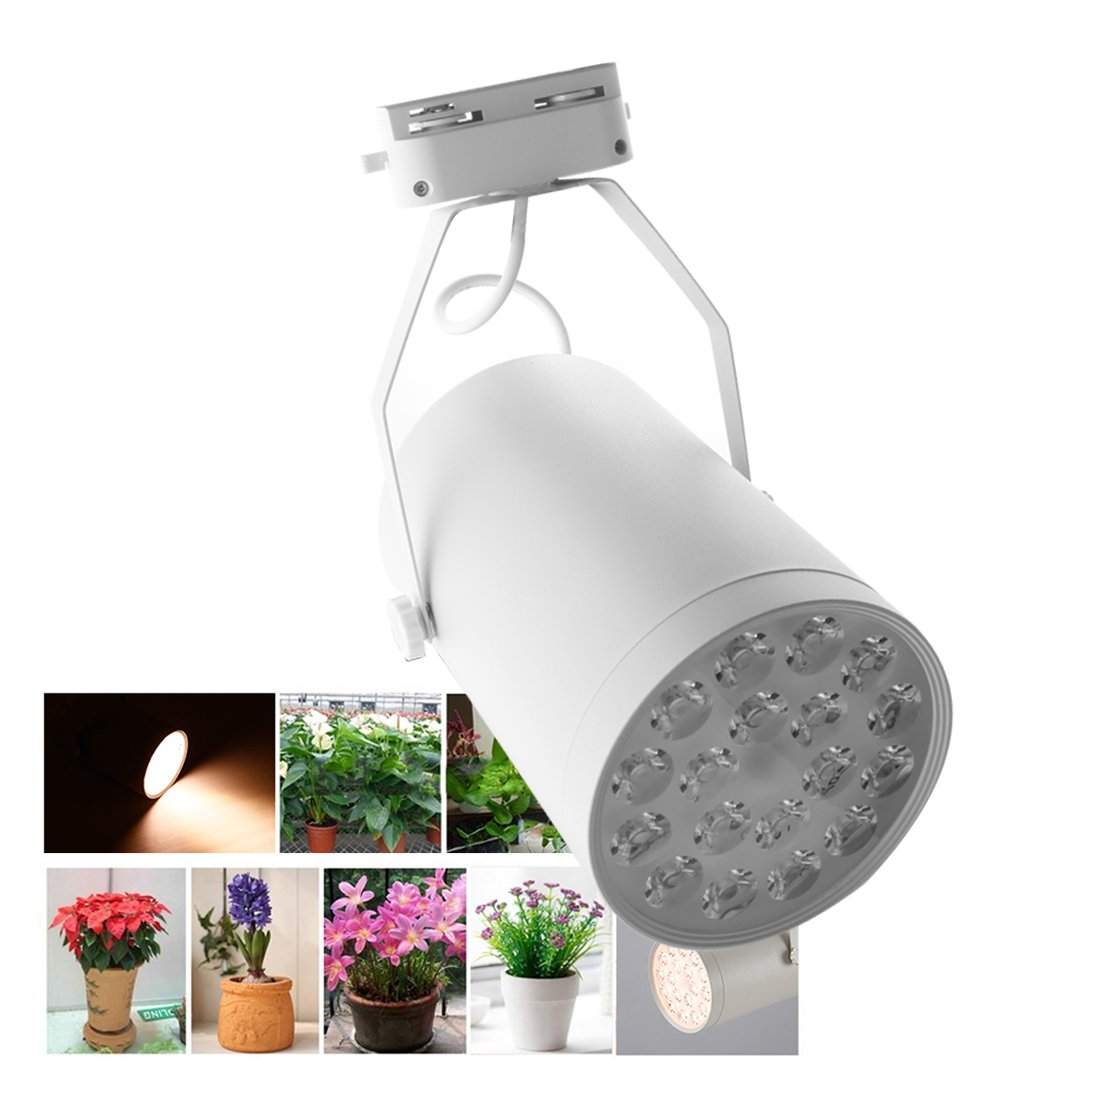 A-szcxtop Upgraded 18W LED Spotlight 18 LED Bulbs Plant Growth Light Adjustable for Patio, Yard, Driveway, Office, Home Garden, Greenhouse … by A-szcxtop (Image #2)